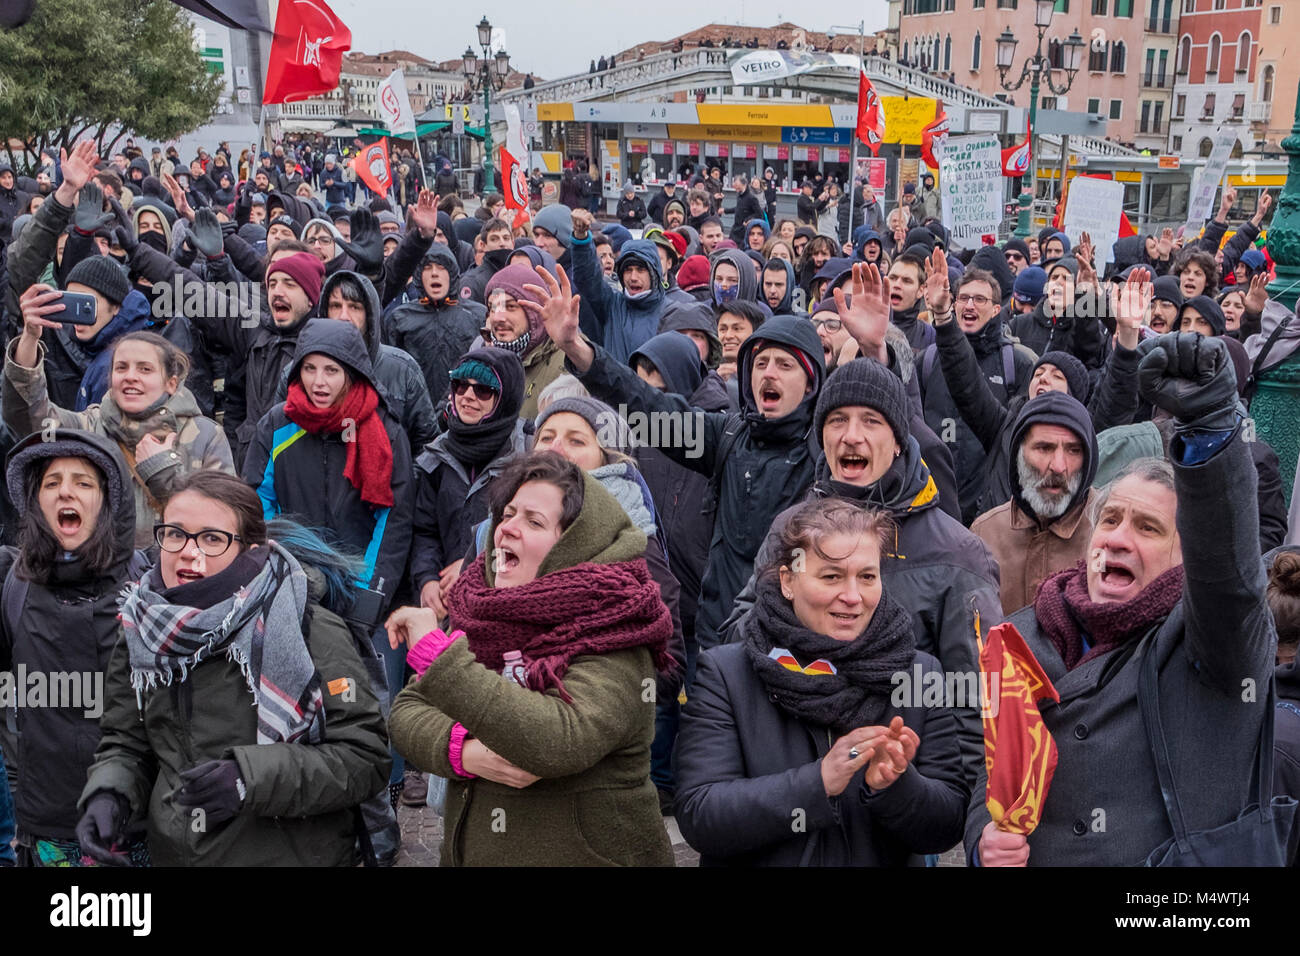 Venice, ITALY. 18 February, 2018. The Centri Sociali protest in Venice, near the train station, against an event - Stock Image